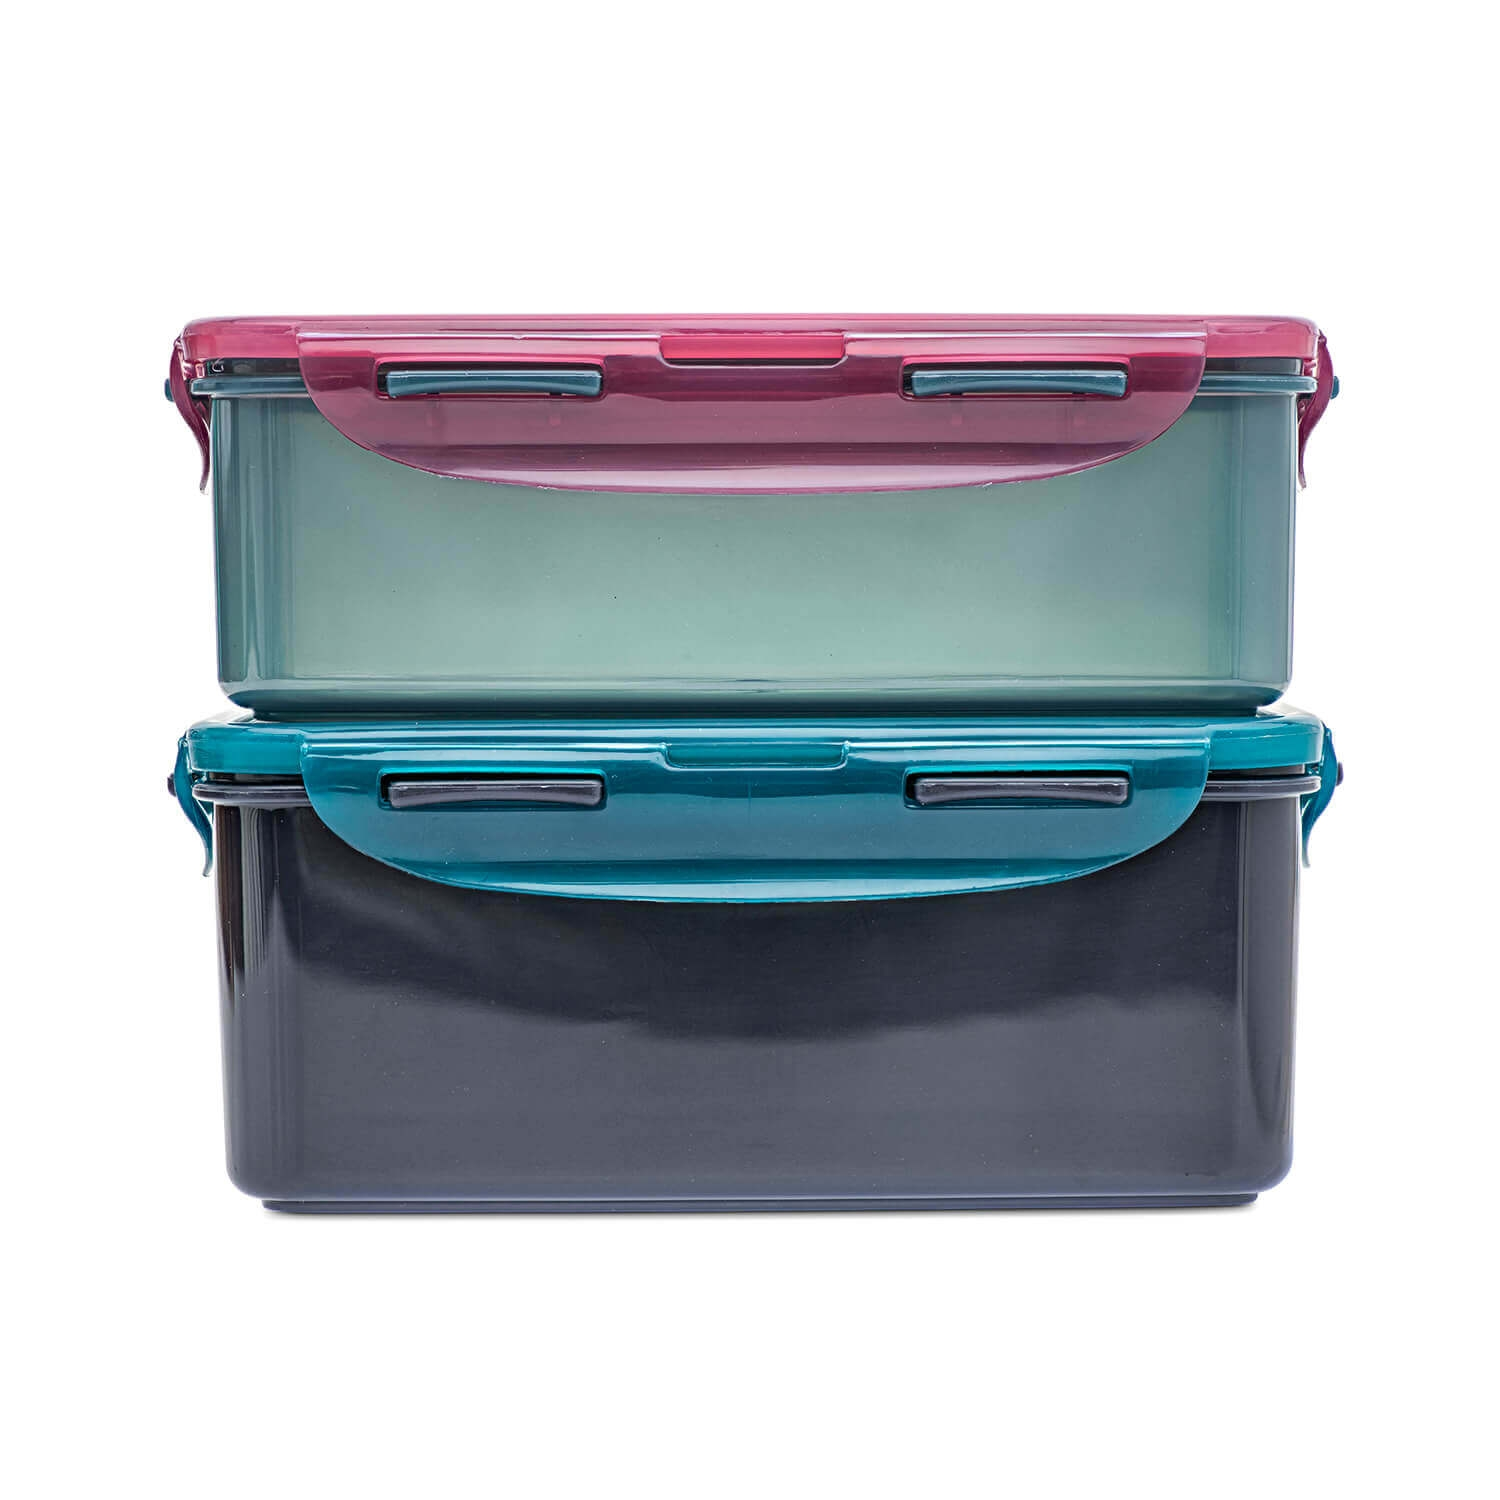 Image of Lock And Lock Eco 2 Piece Food Container Set, Assorted